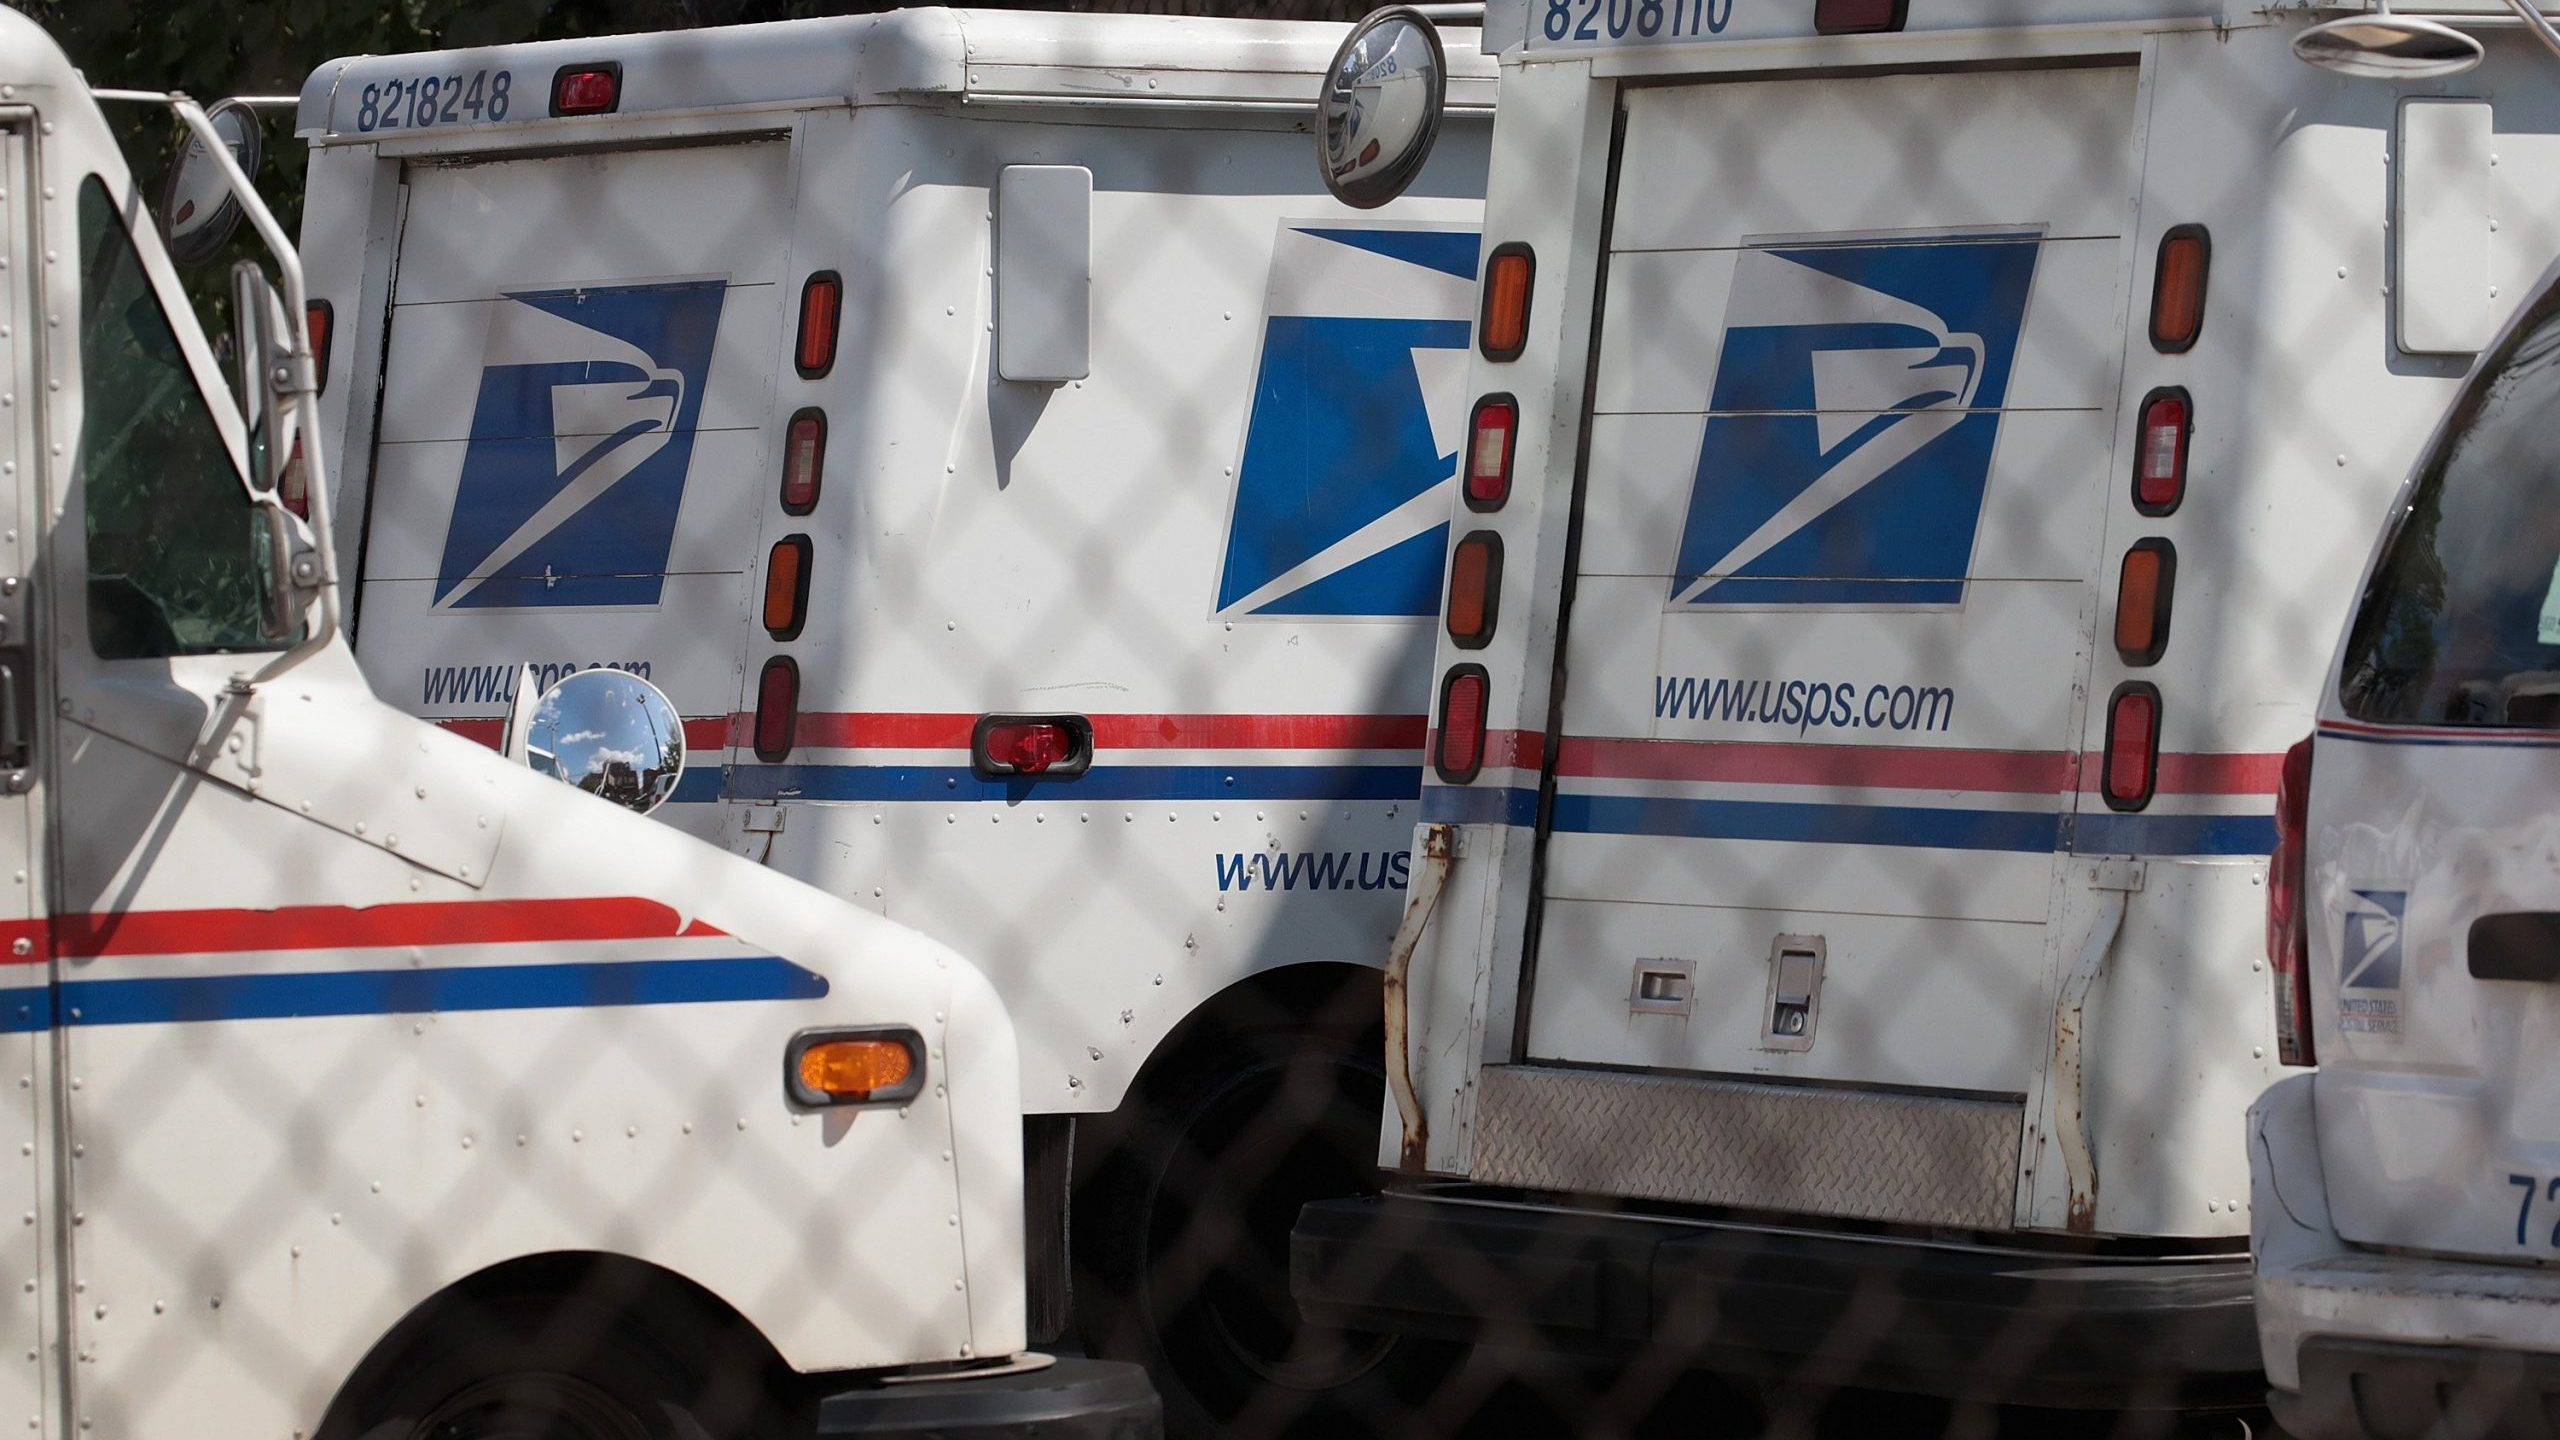 United States Postal Service (USPS) trucks are parked at a postal facility on August 15, 2019 in Chicago, Illinois. (Credit: Scott Olson/Getty Images)